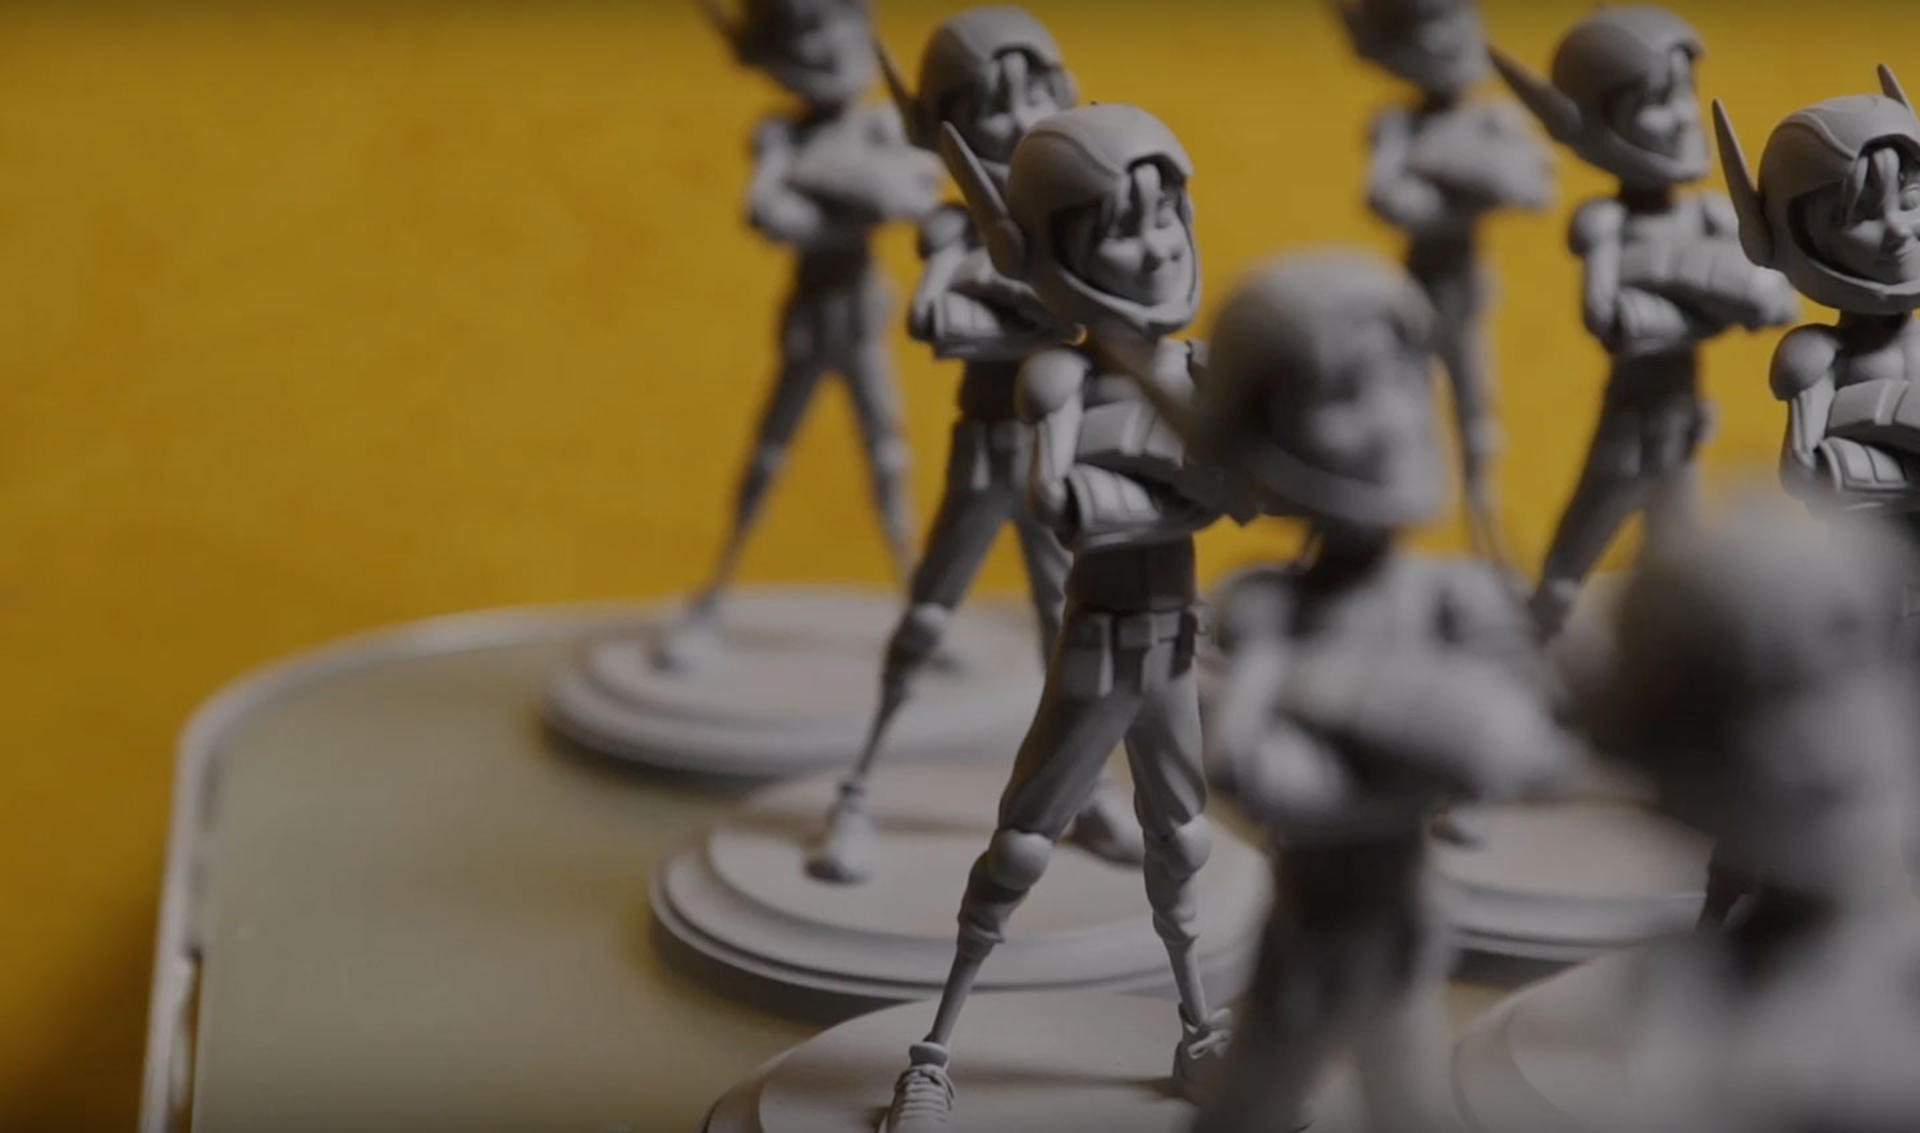 3D scanning of entertainment figurines for FX and manufacturing